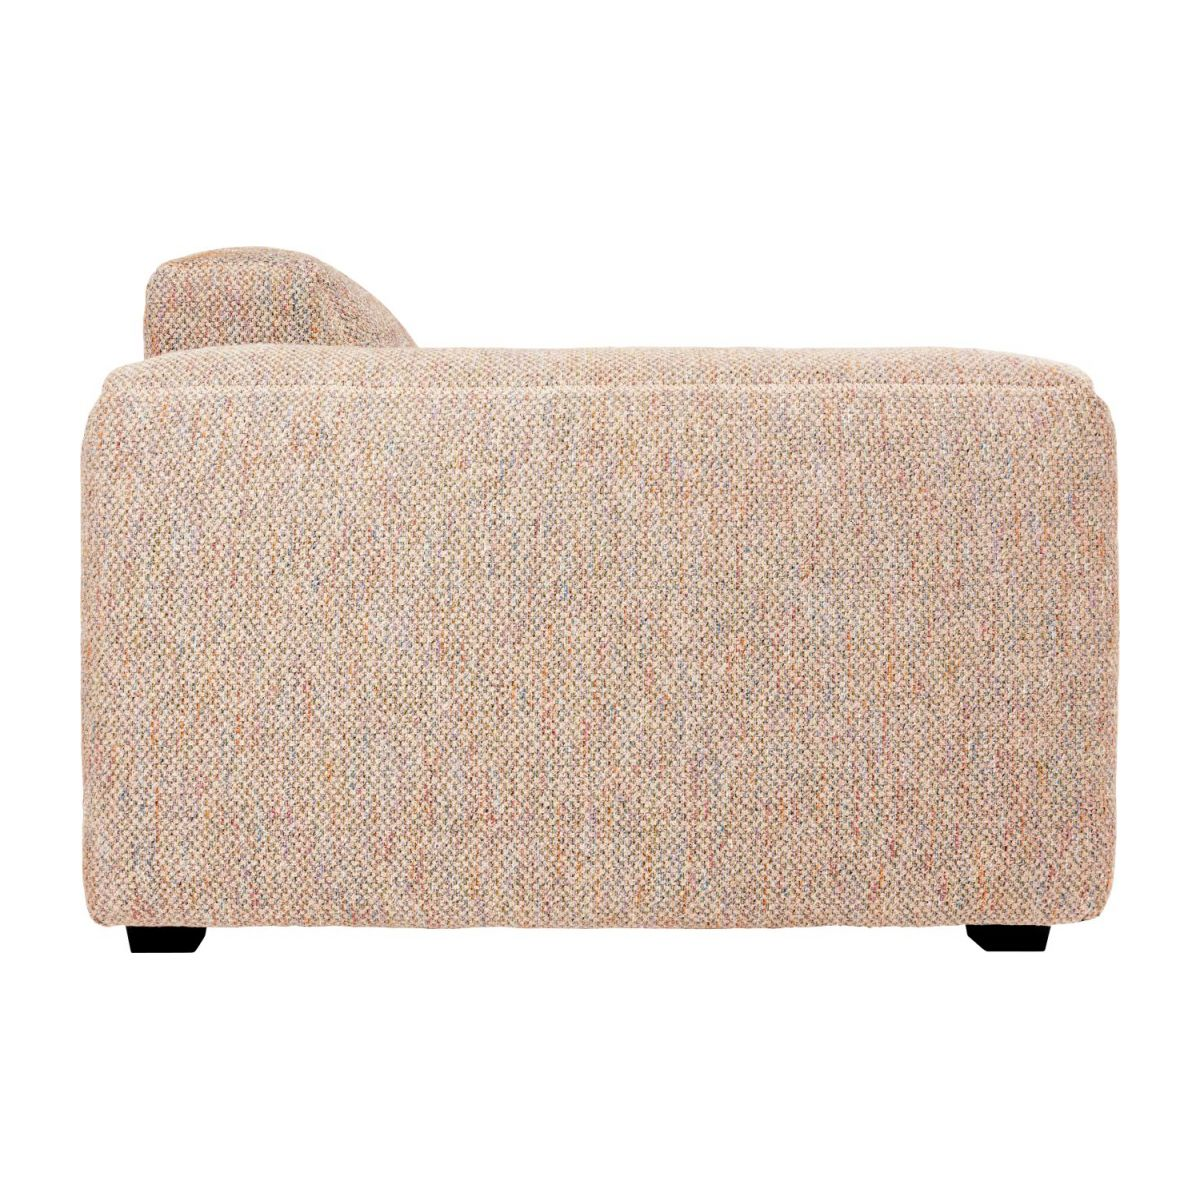 4-seater sofa in Bellagio fabric, passion orange n°6